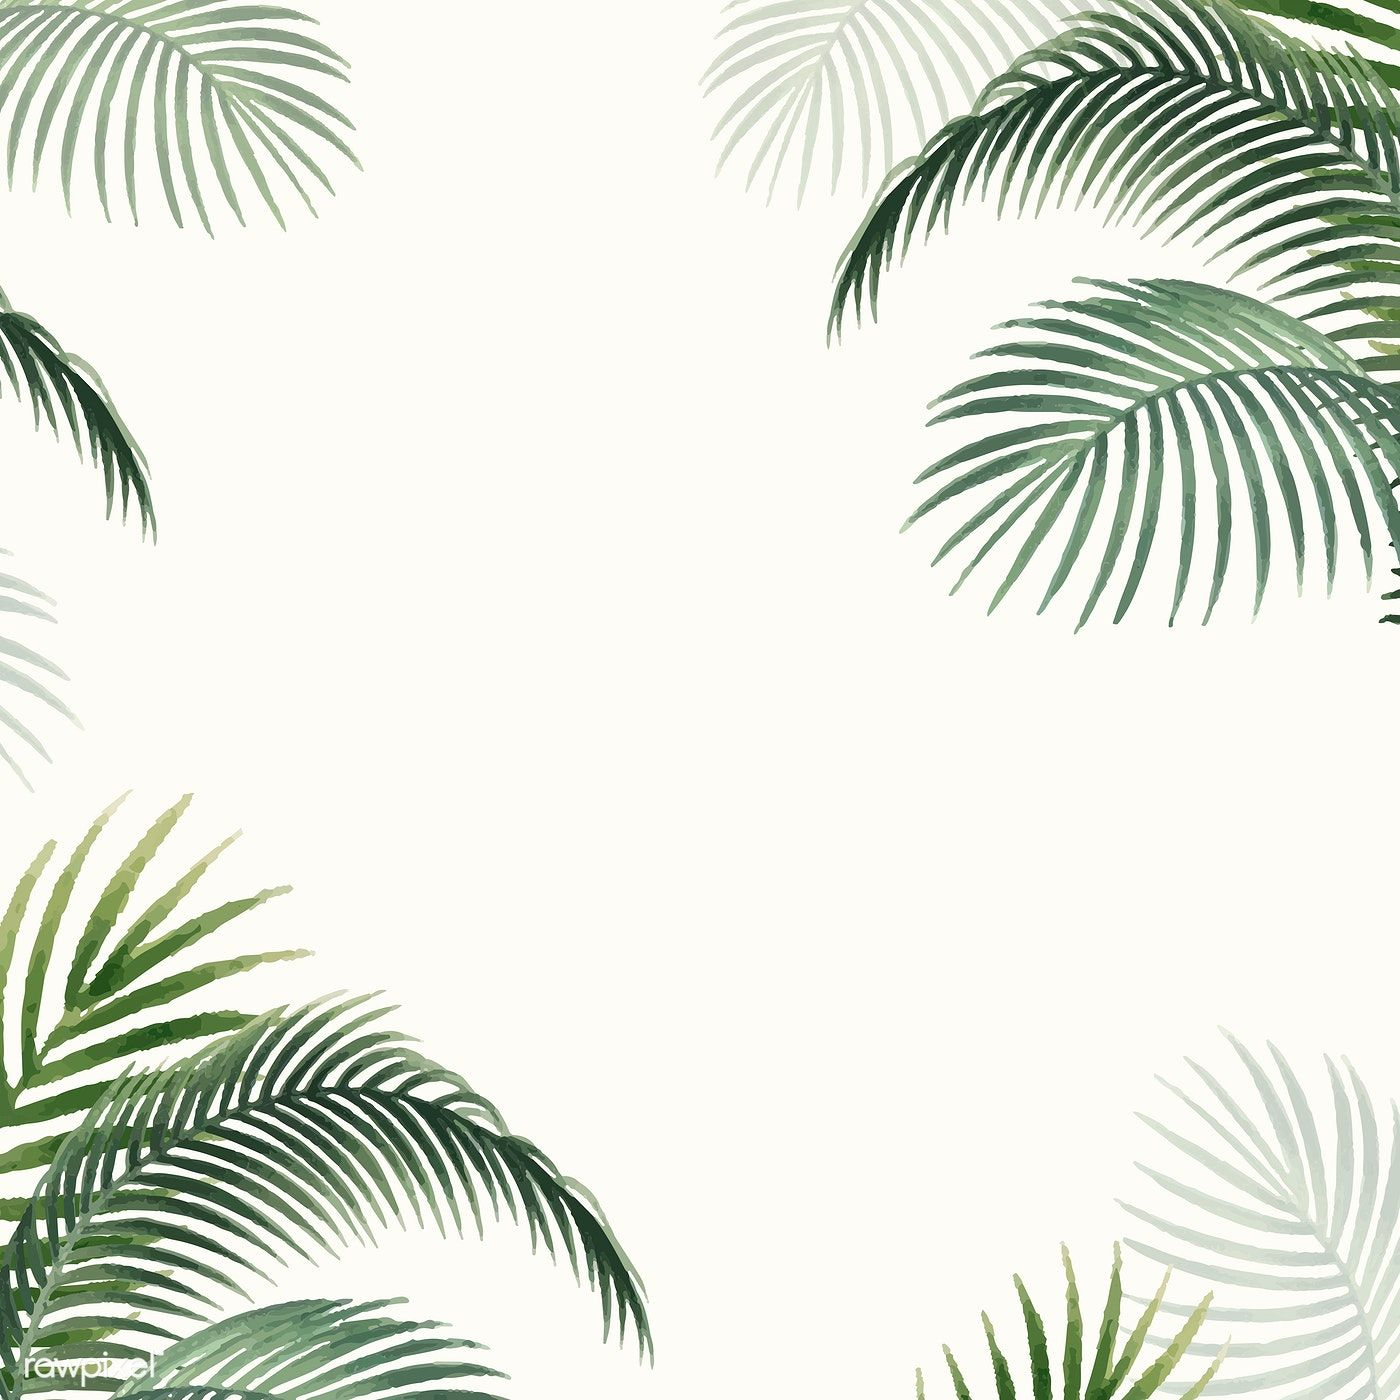 Download Premium Vector Of Frame With Palm Leaves Vintage Illustration Palm Leaves Vintage Illustration Free Frames